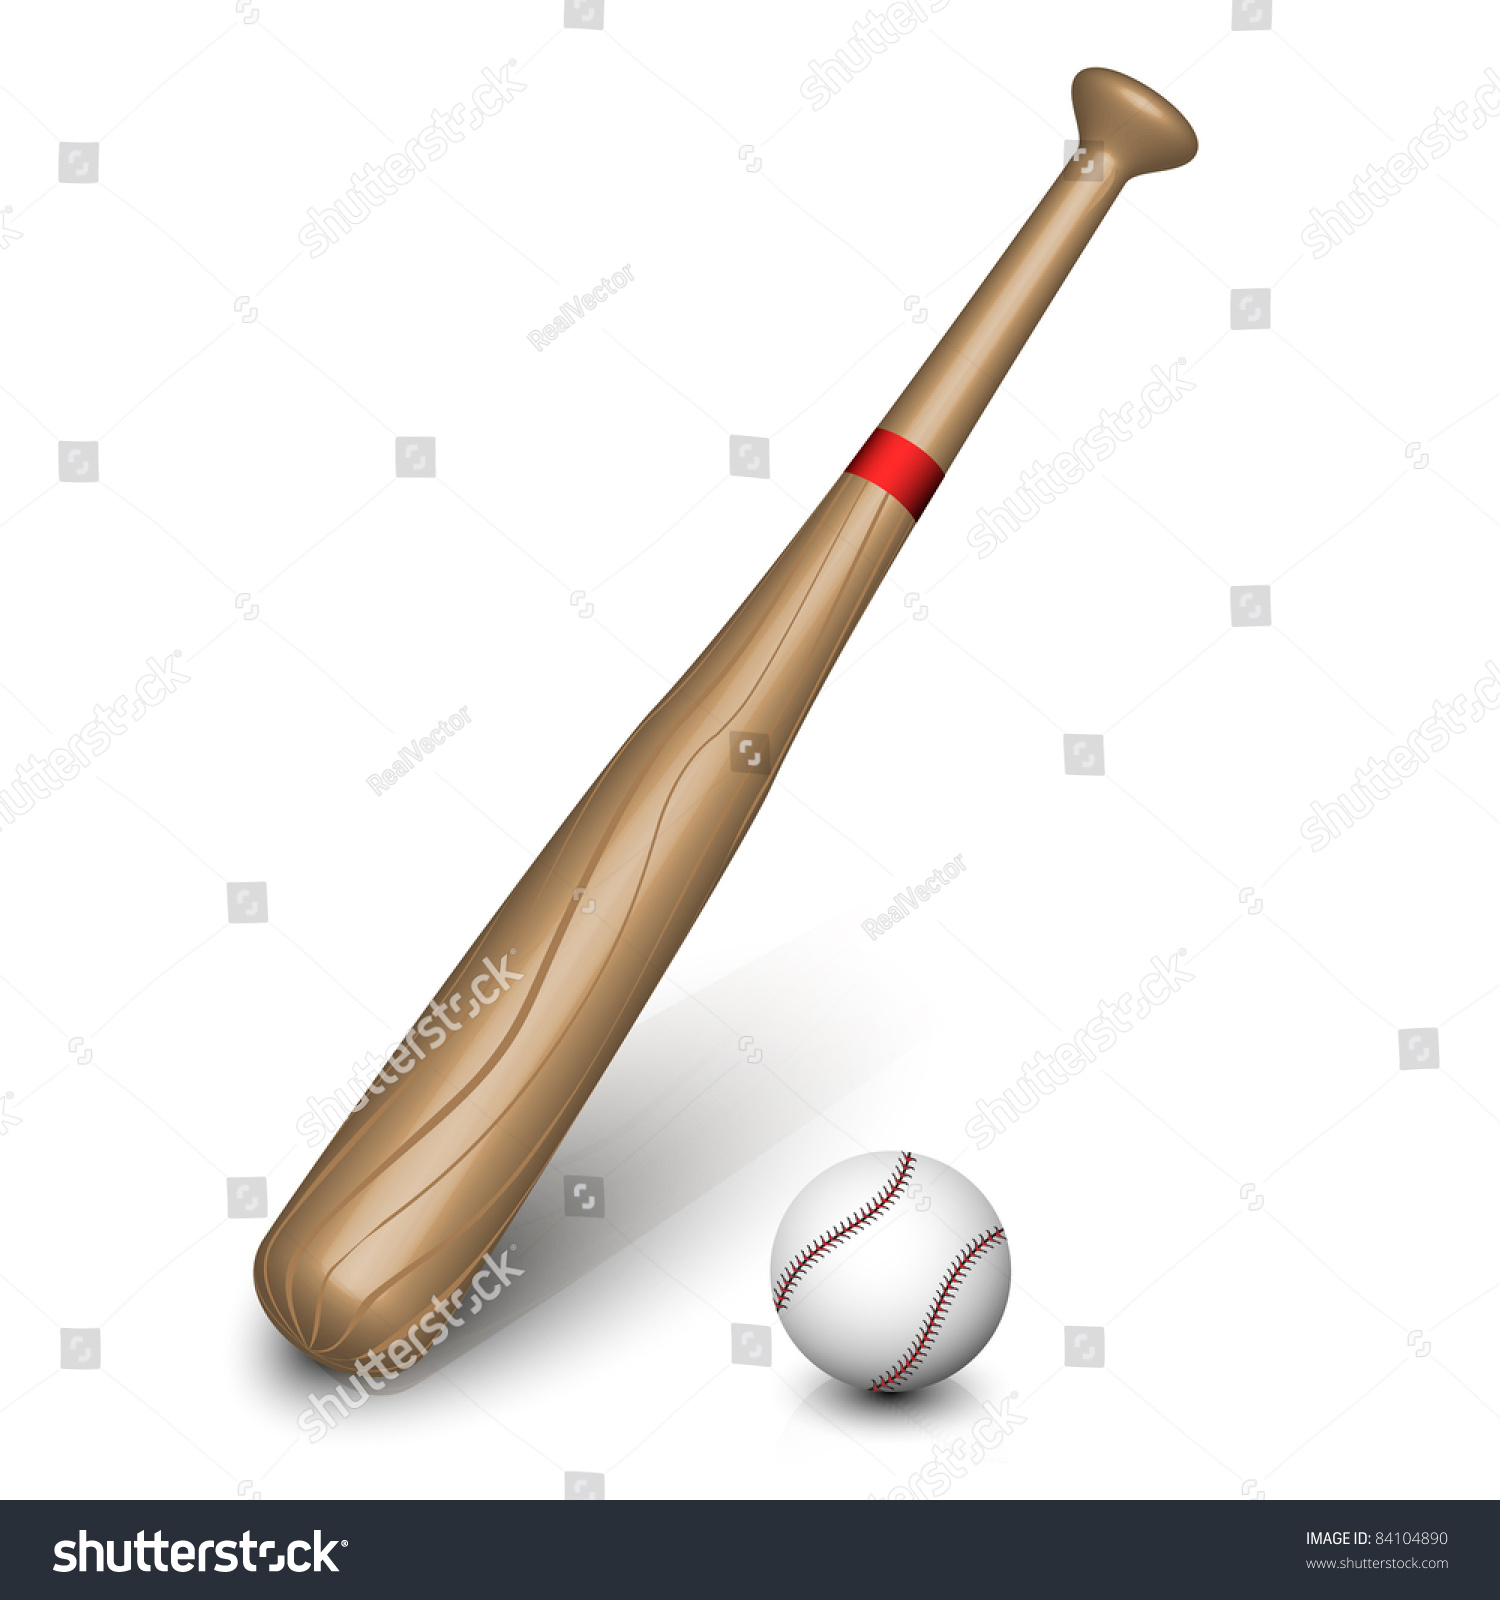 how to draw a baseball bat and ball